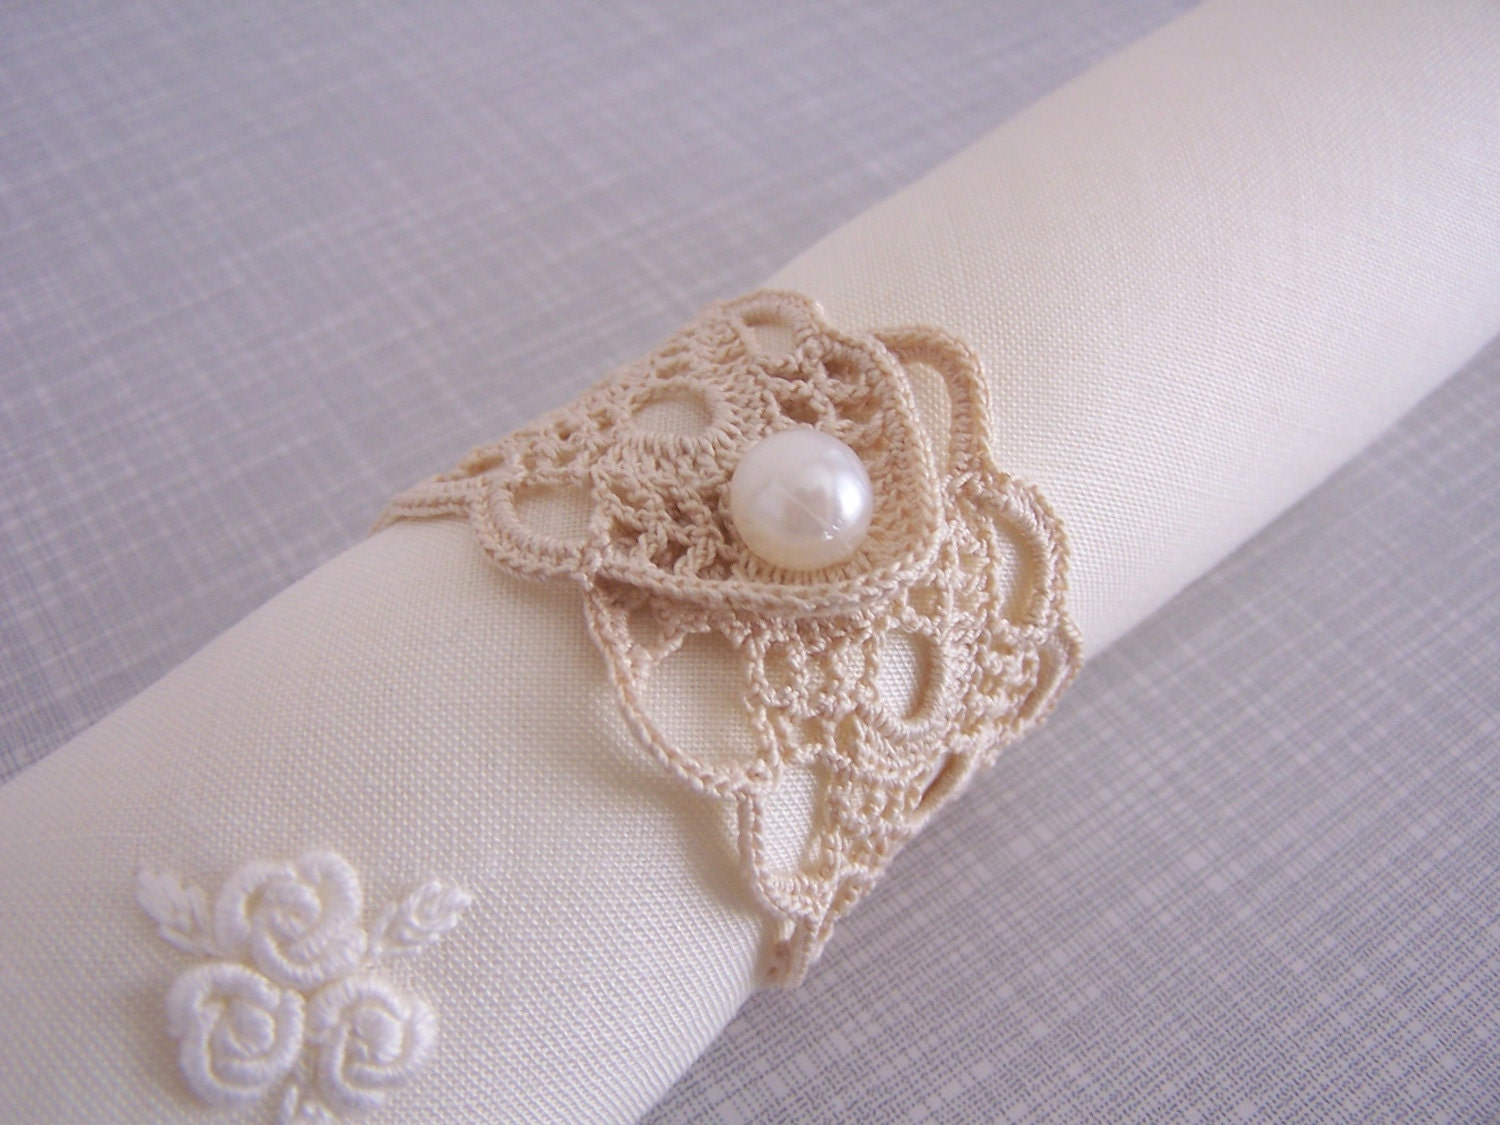 Crocheting Rings : crochet napkin rings by mehves1979 on Etsy